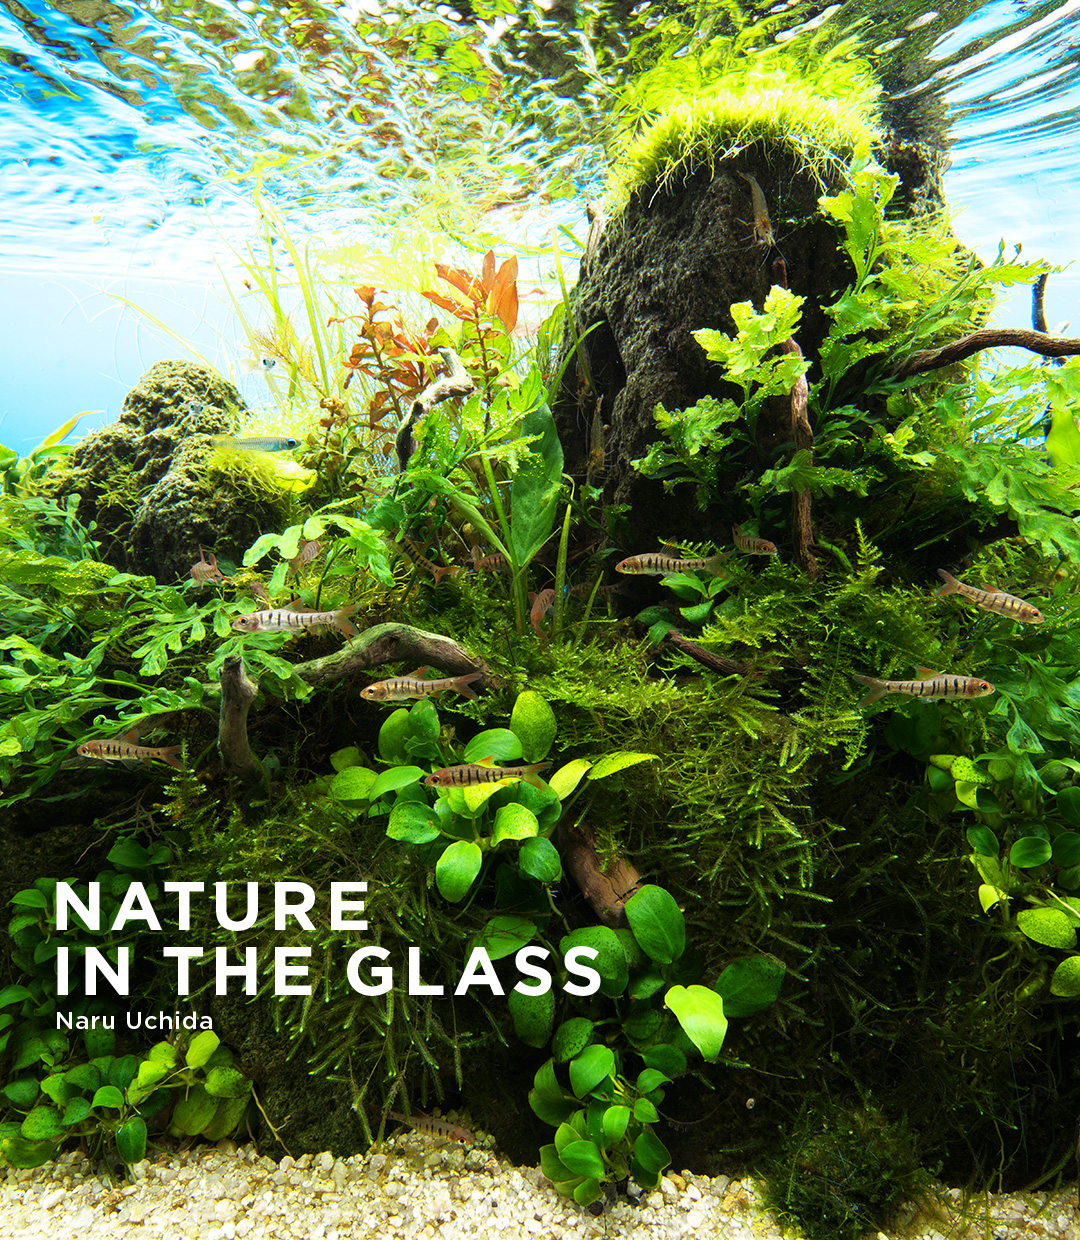 NATURE IN THE GLASS 'Stream in the rainy season'